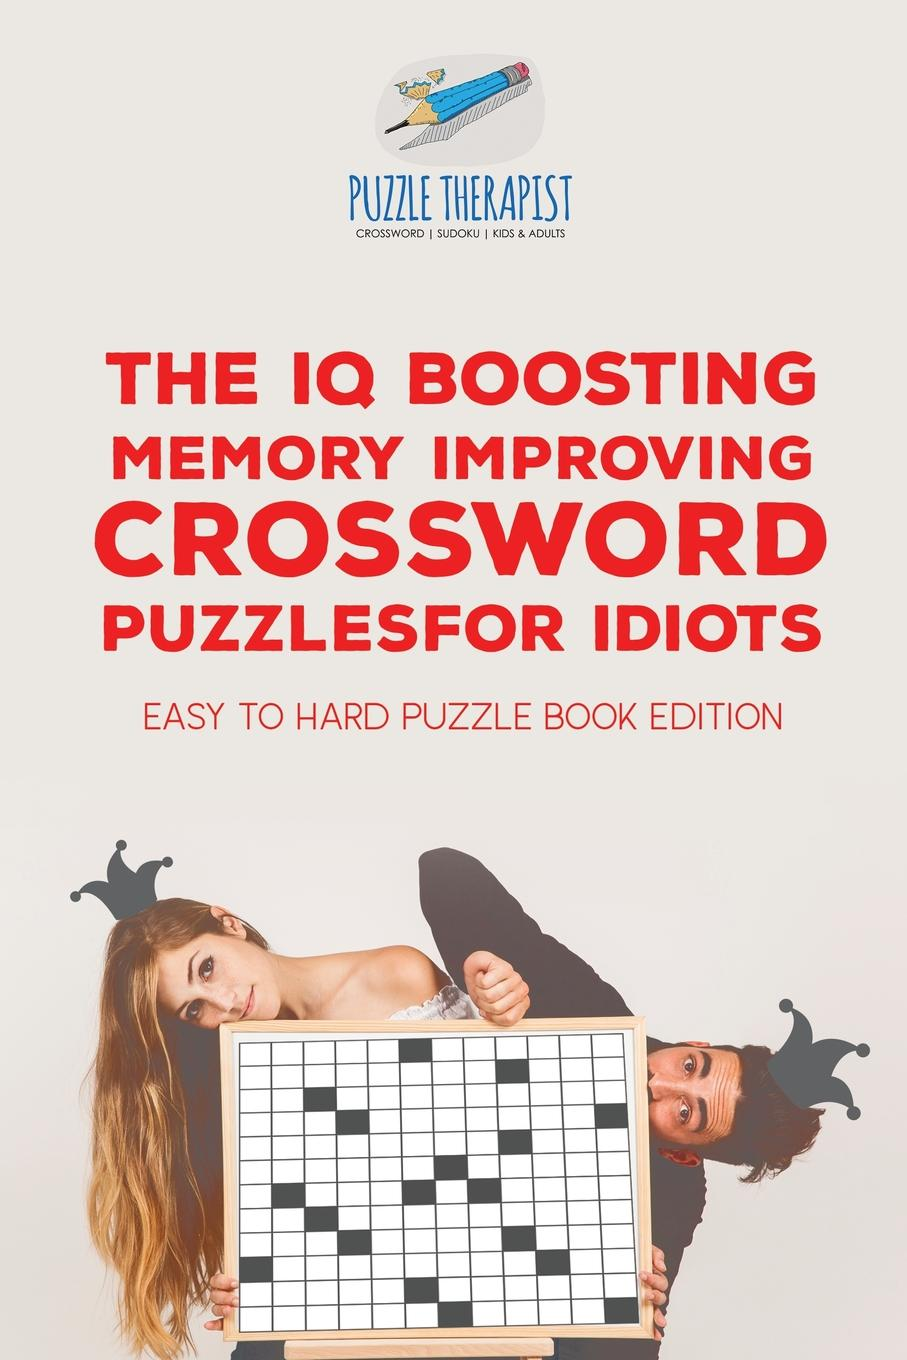 Puzzle Therapist The IQ Boosting Memory Improving Crossword Puzzles for Idiots . Easy to Hard Puzzle Book Edition tracy alloway the new iq use your working memory to think stronger smarter faster